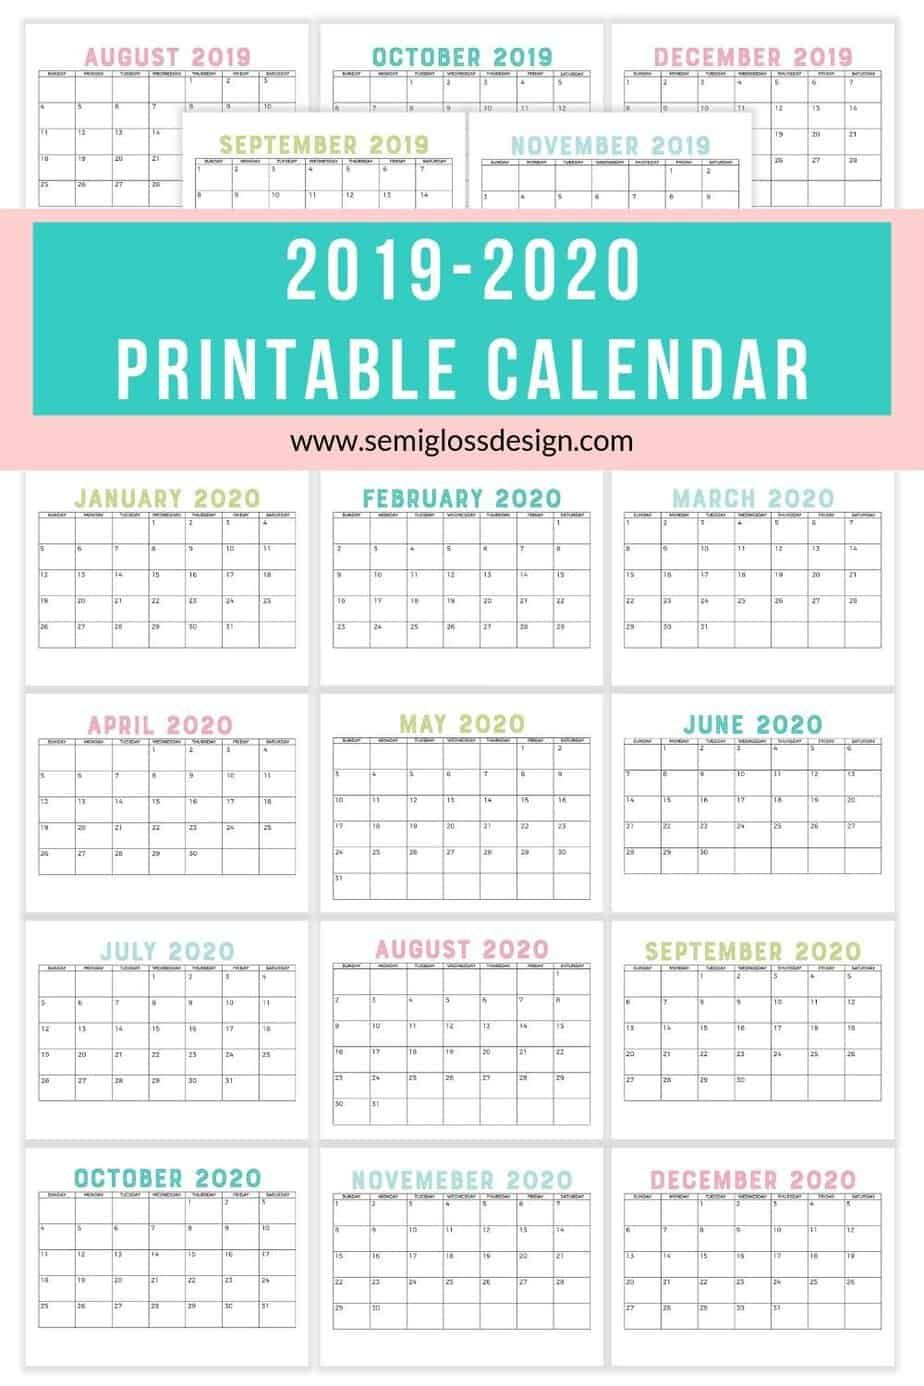 Download A Free 2019-2020 Calendar Printable | Free